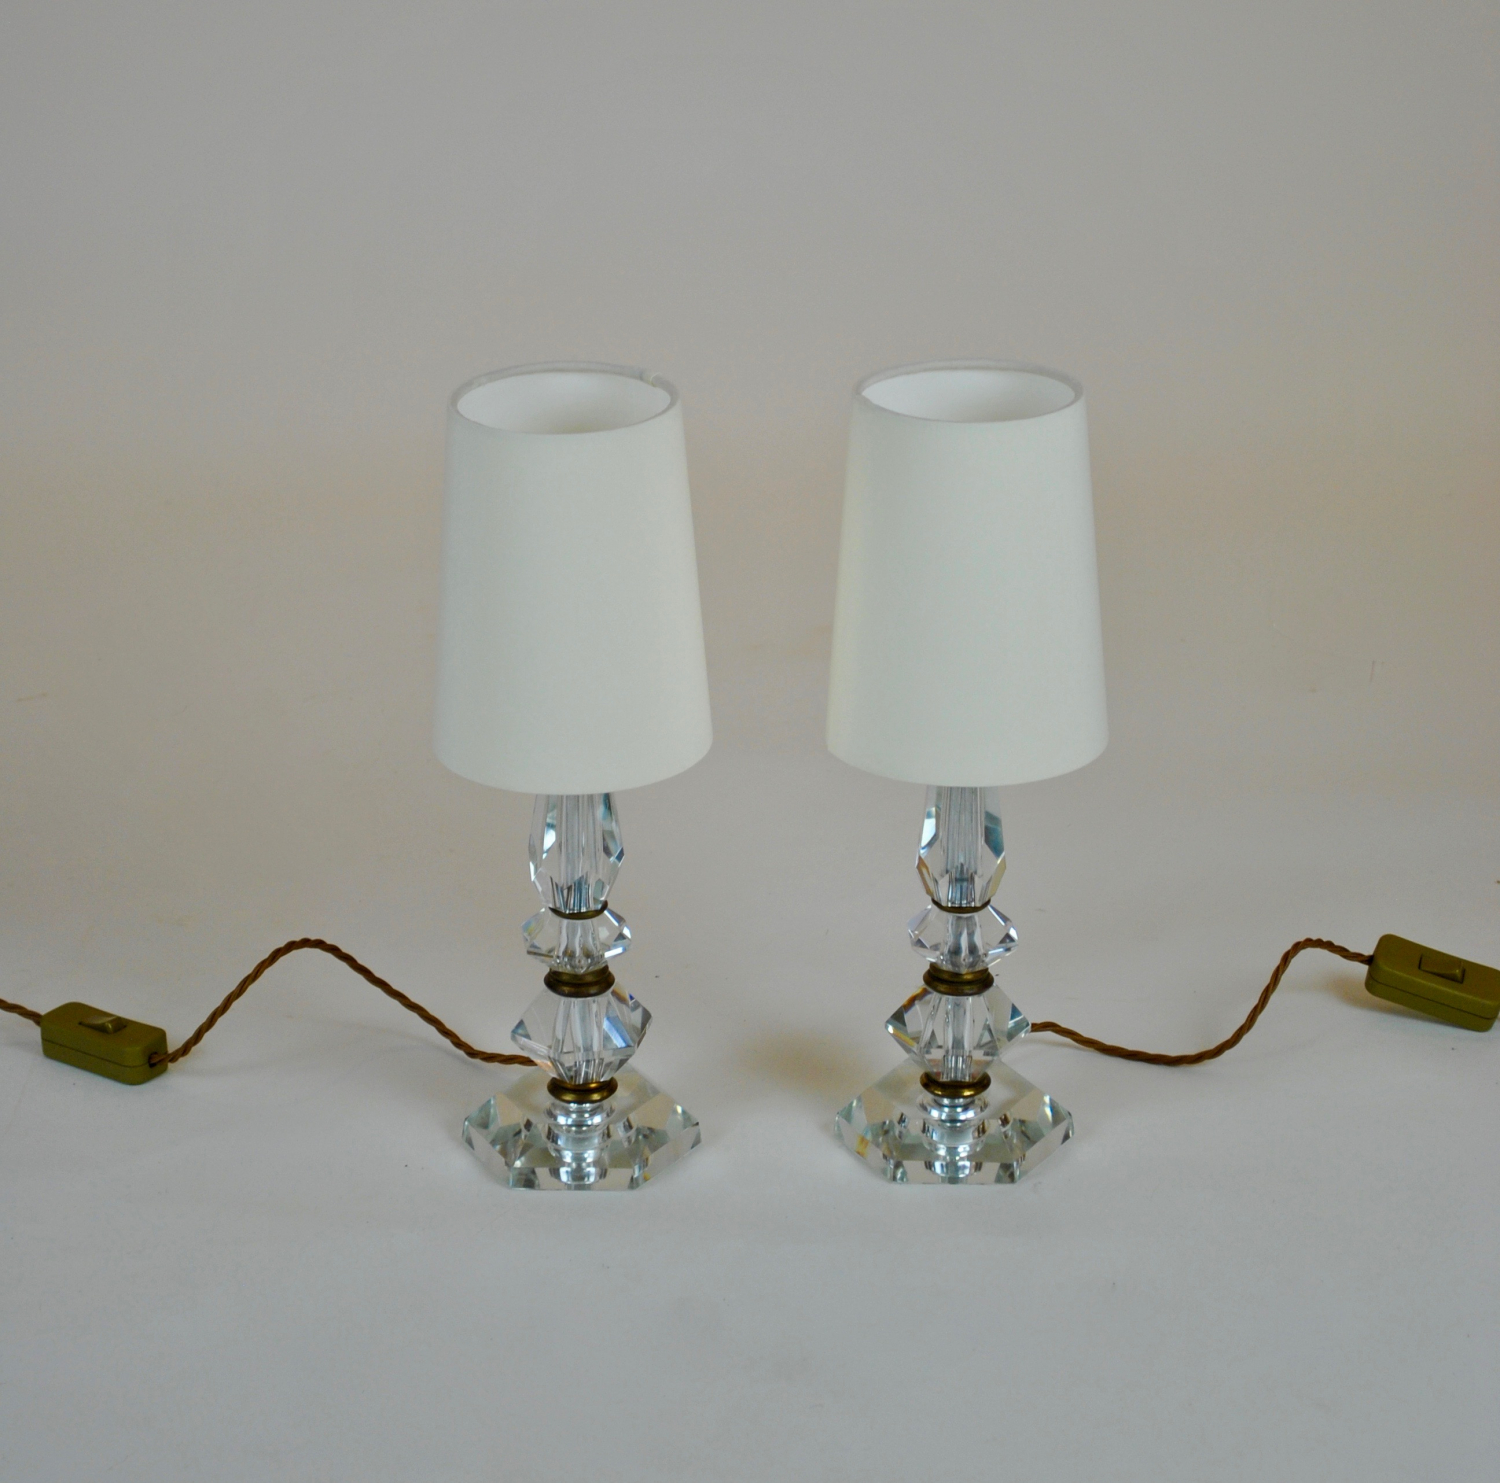 Pair of Art Deco bedside lamps